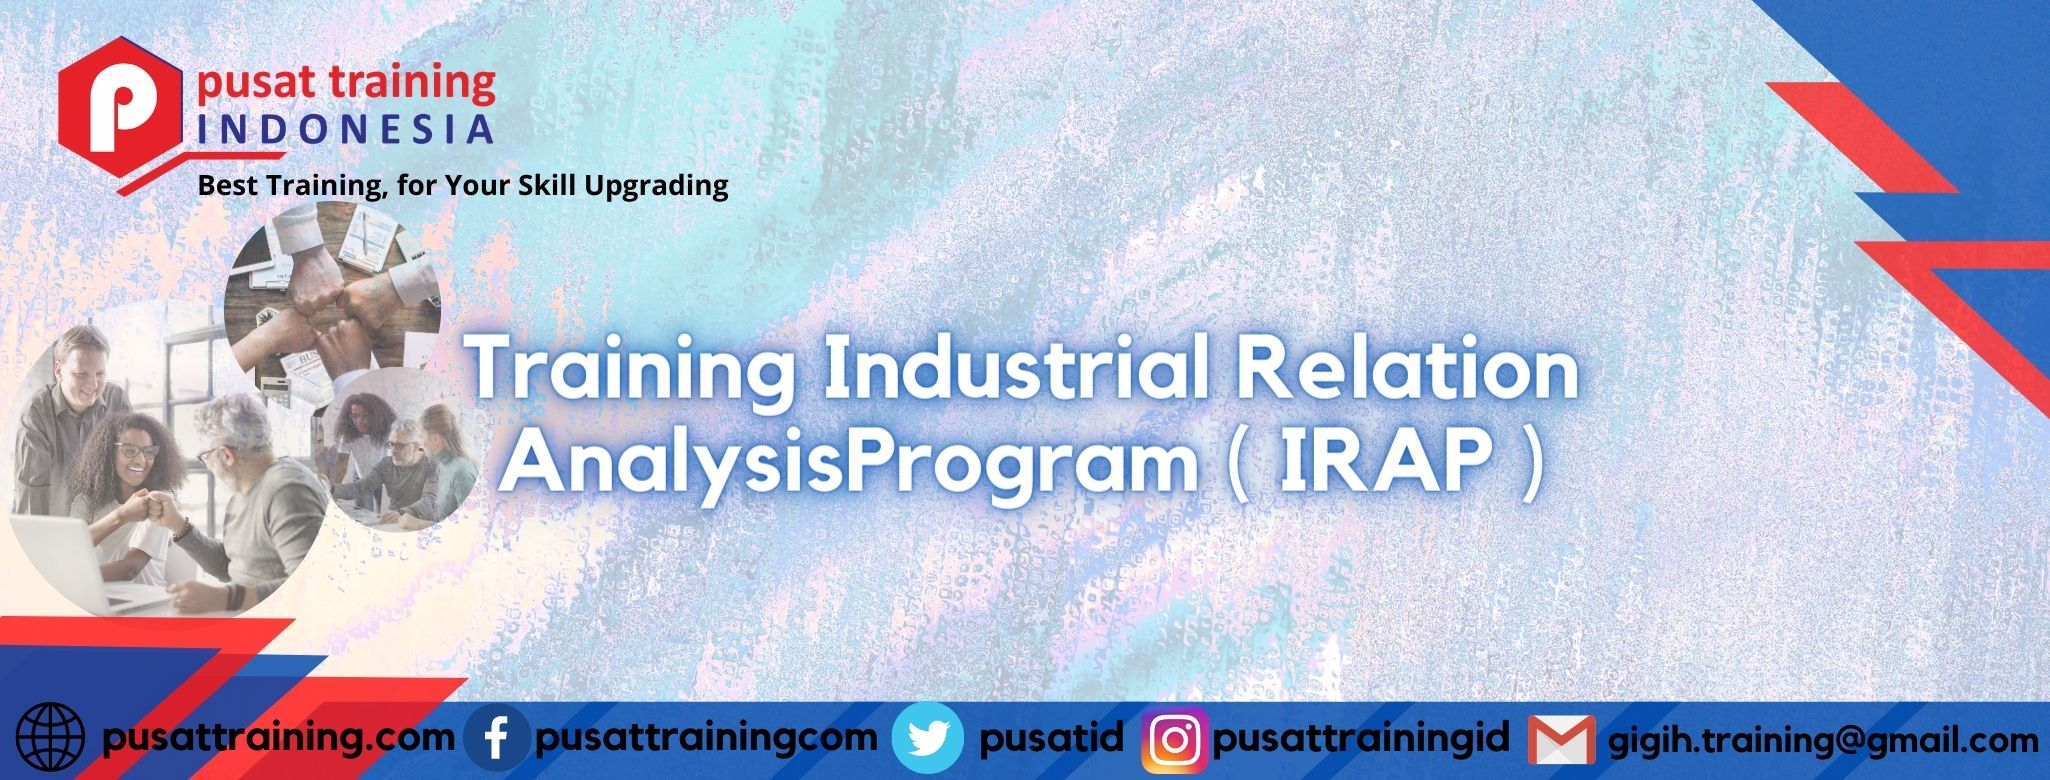 Training-Industrial-Relation-AnalysisProgram-IRAP-1-1.j